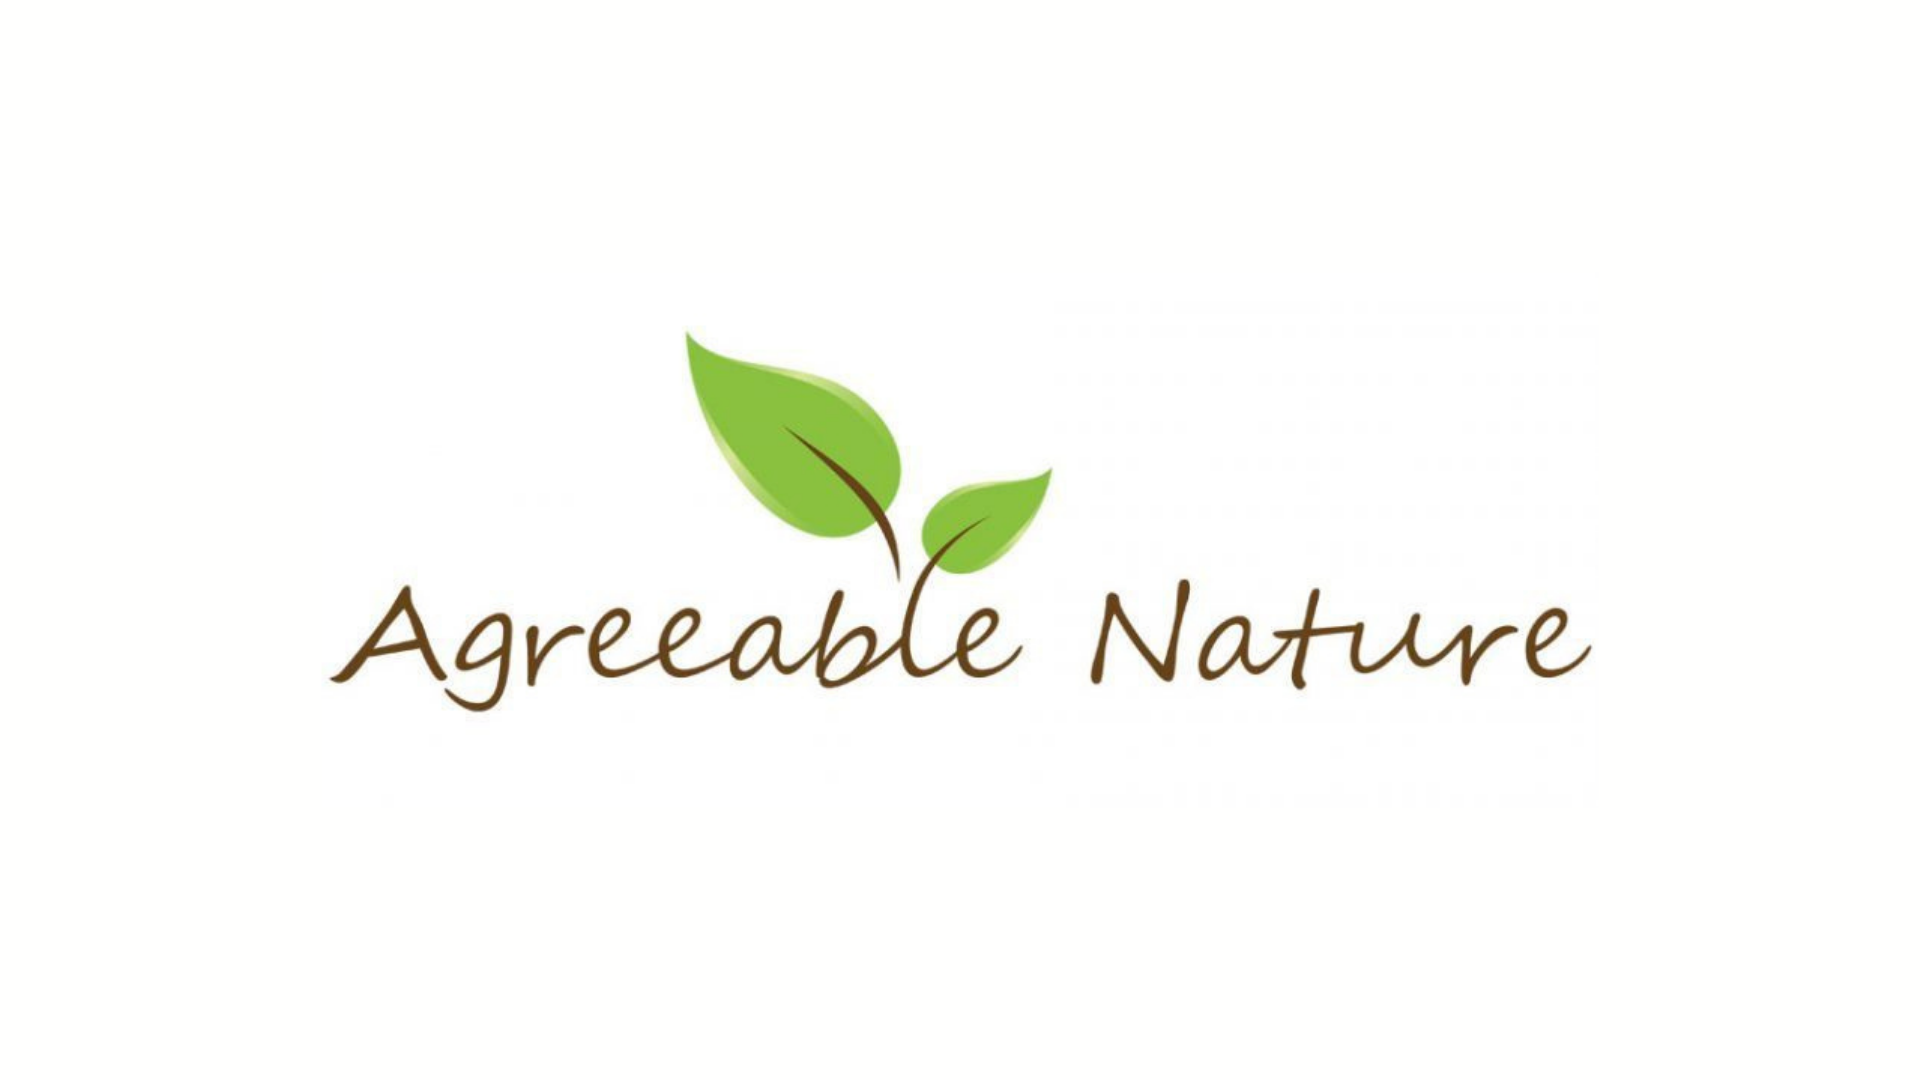 Agreeable Nature